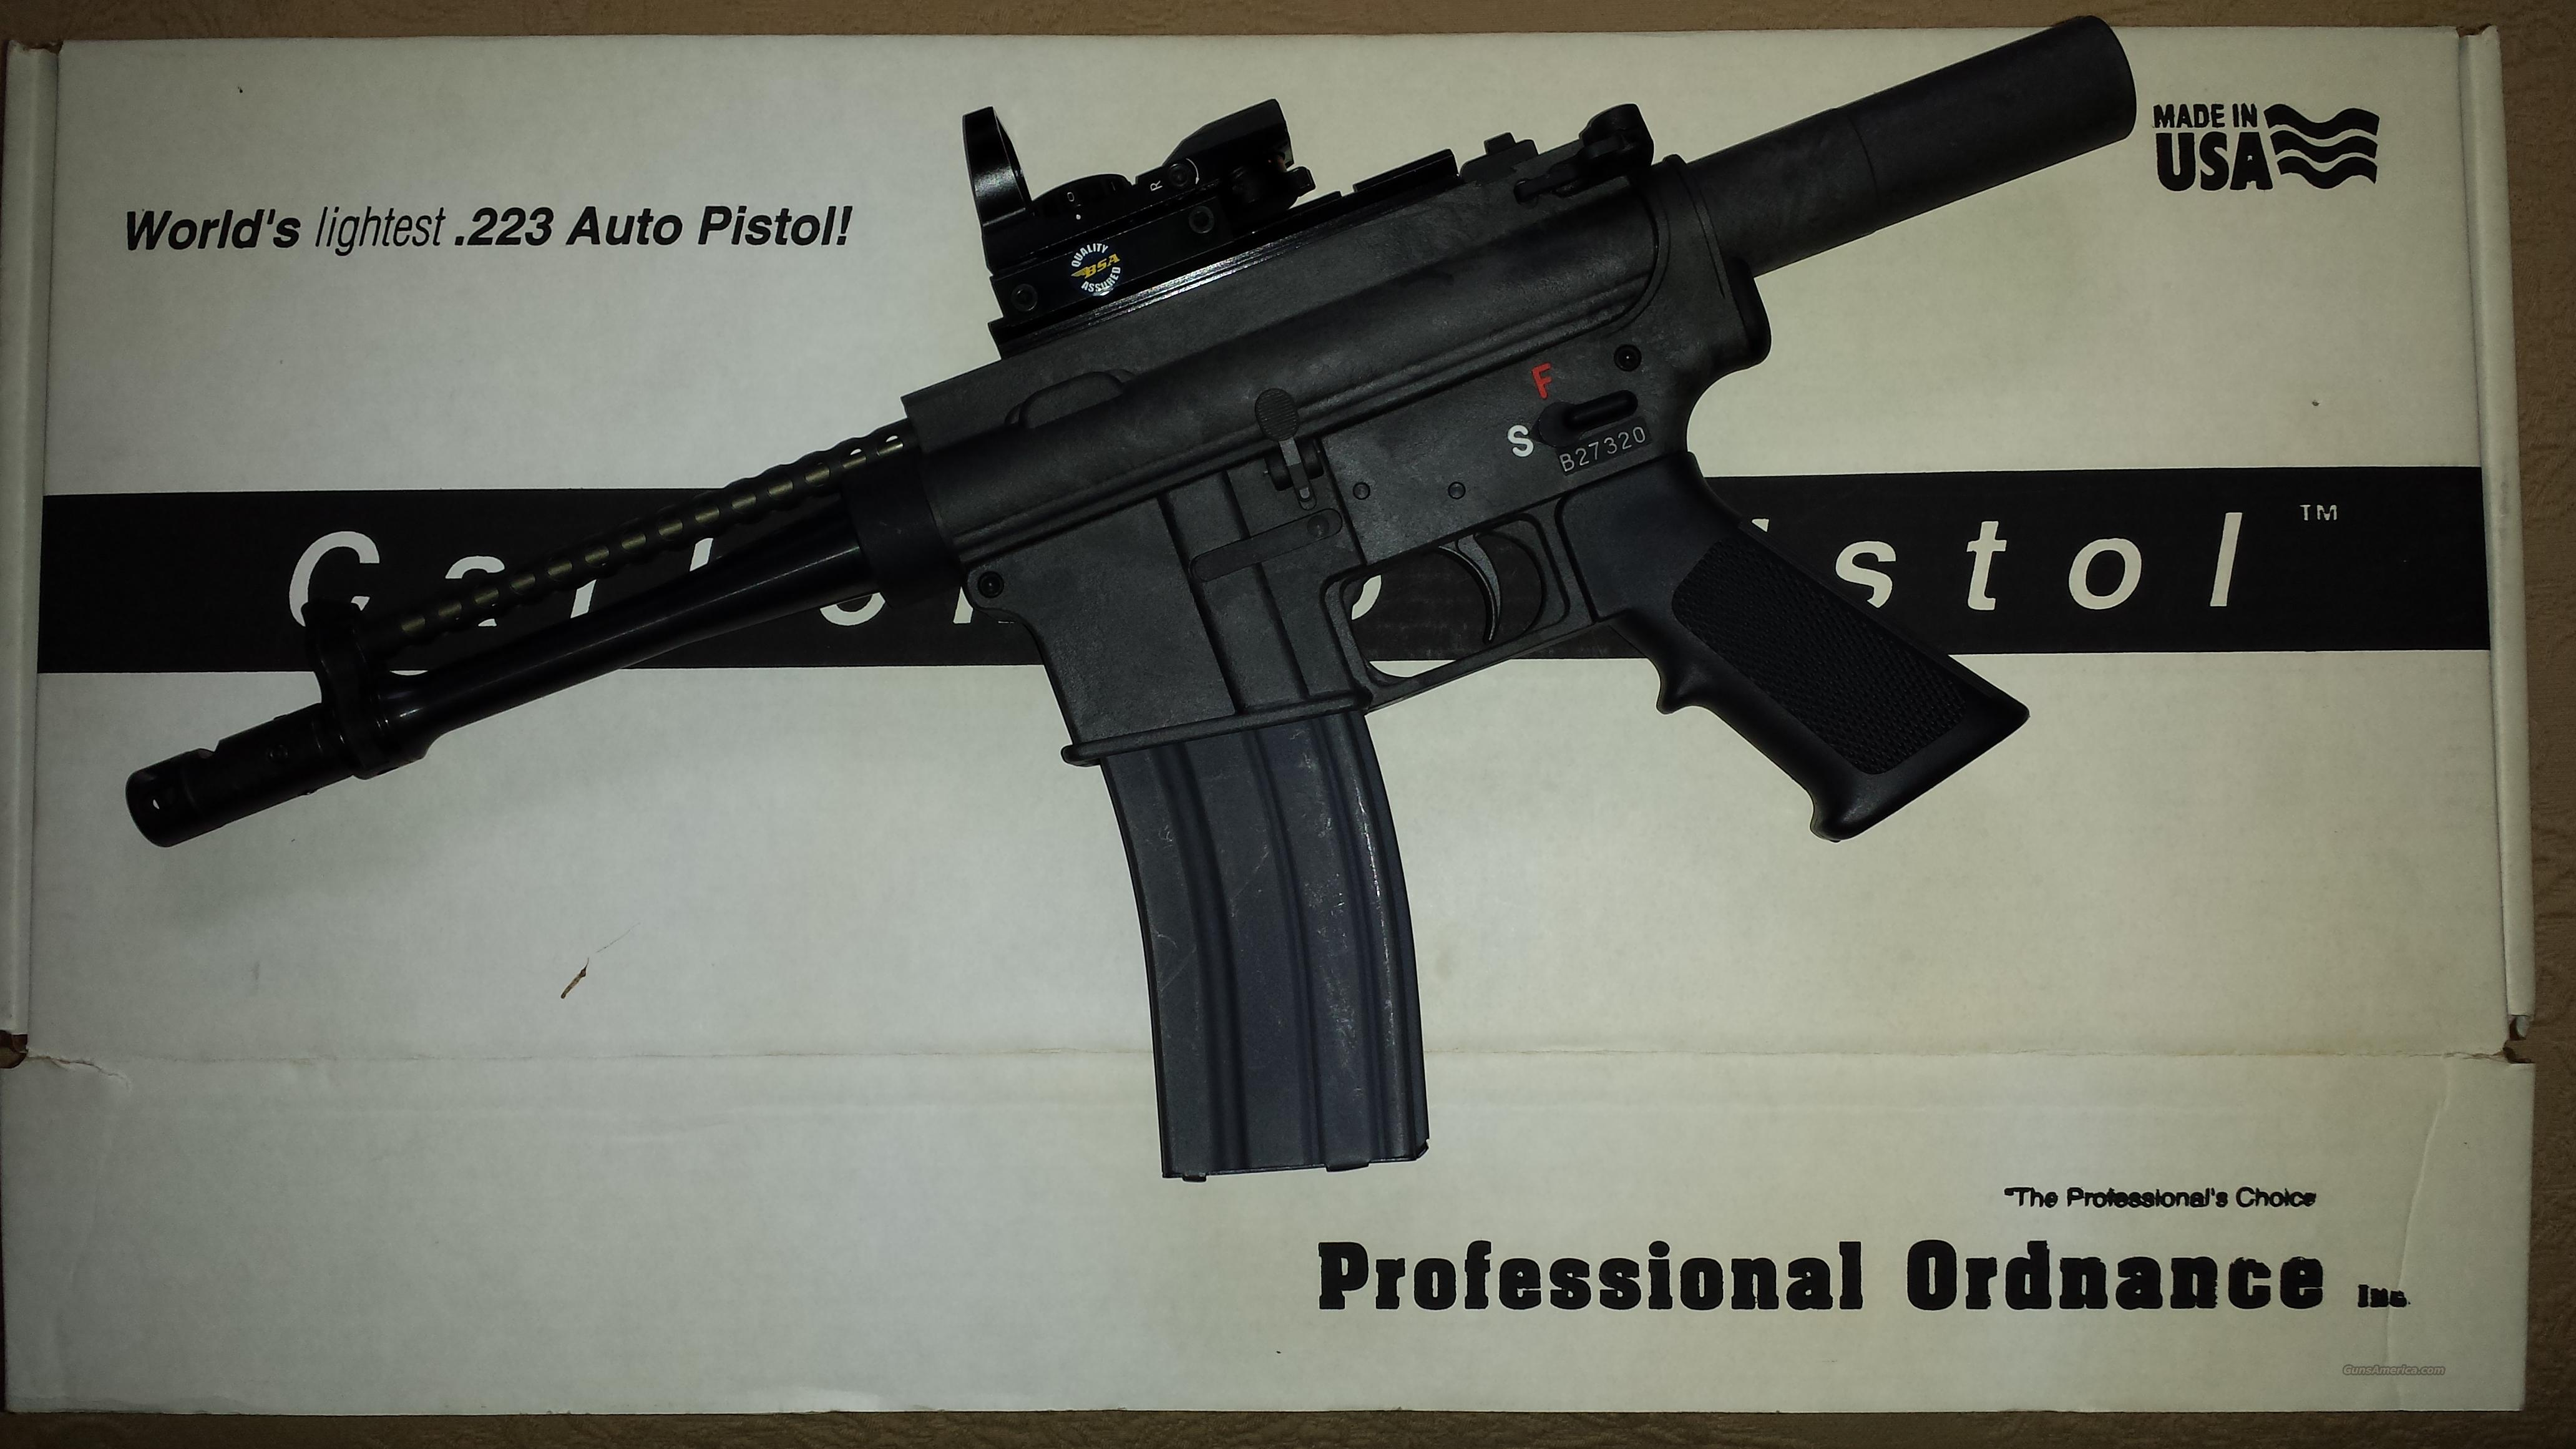 Professional Ordnance Carbon 15 Pistol with Holographic Sight  Guns > Pistols > Tactical Pistols Misc.